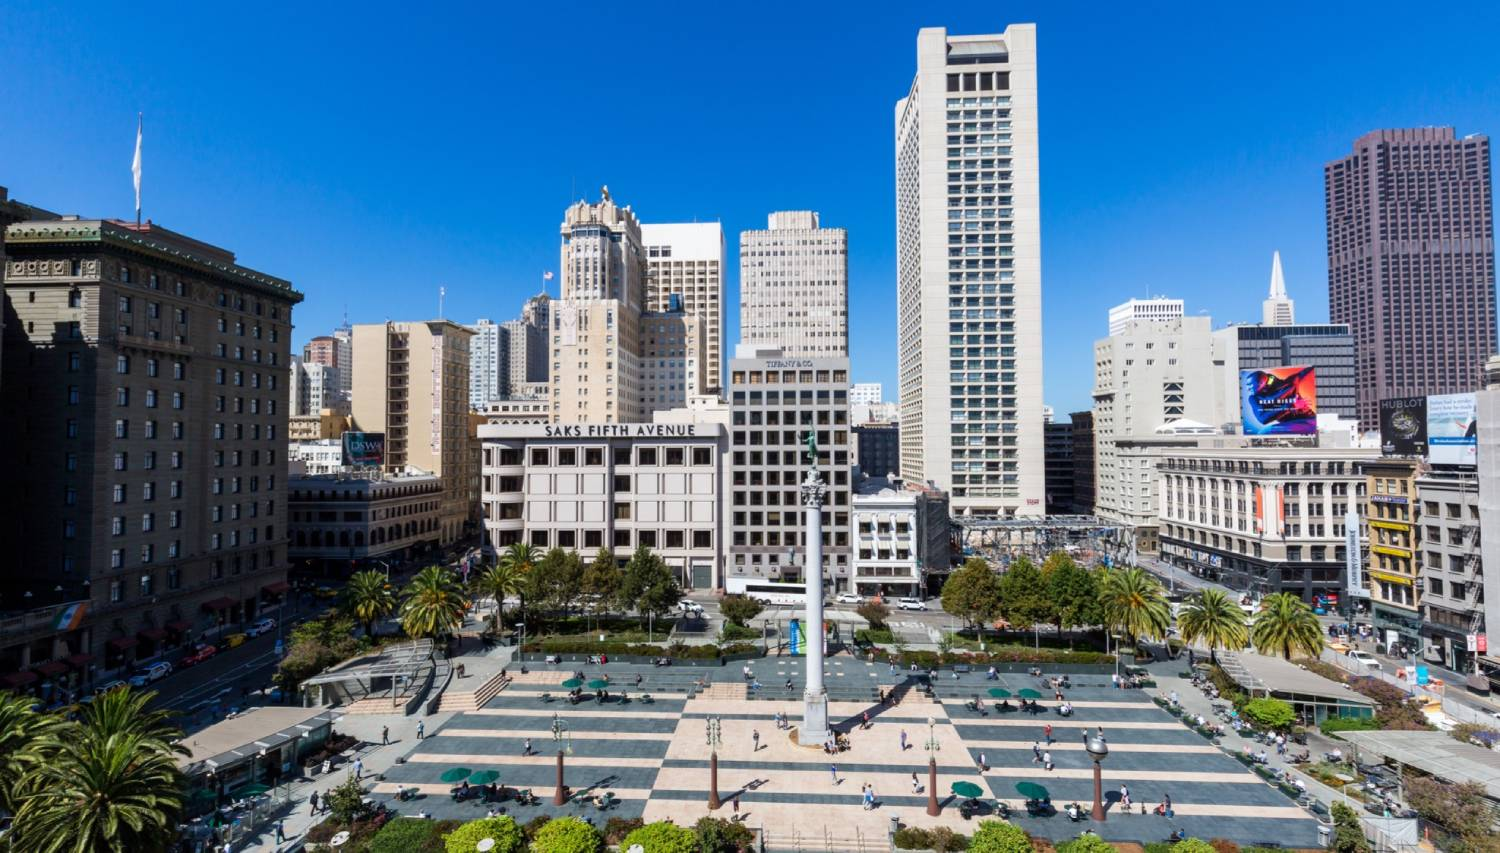 Union Square - Things To Do In San Francisco